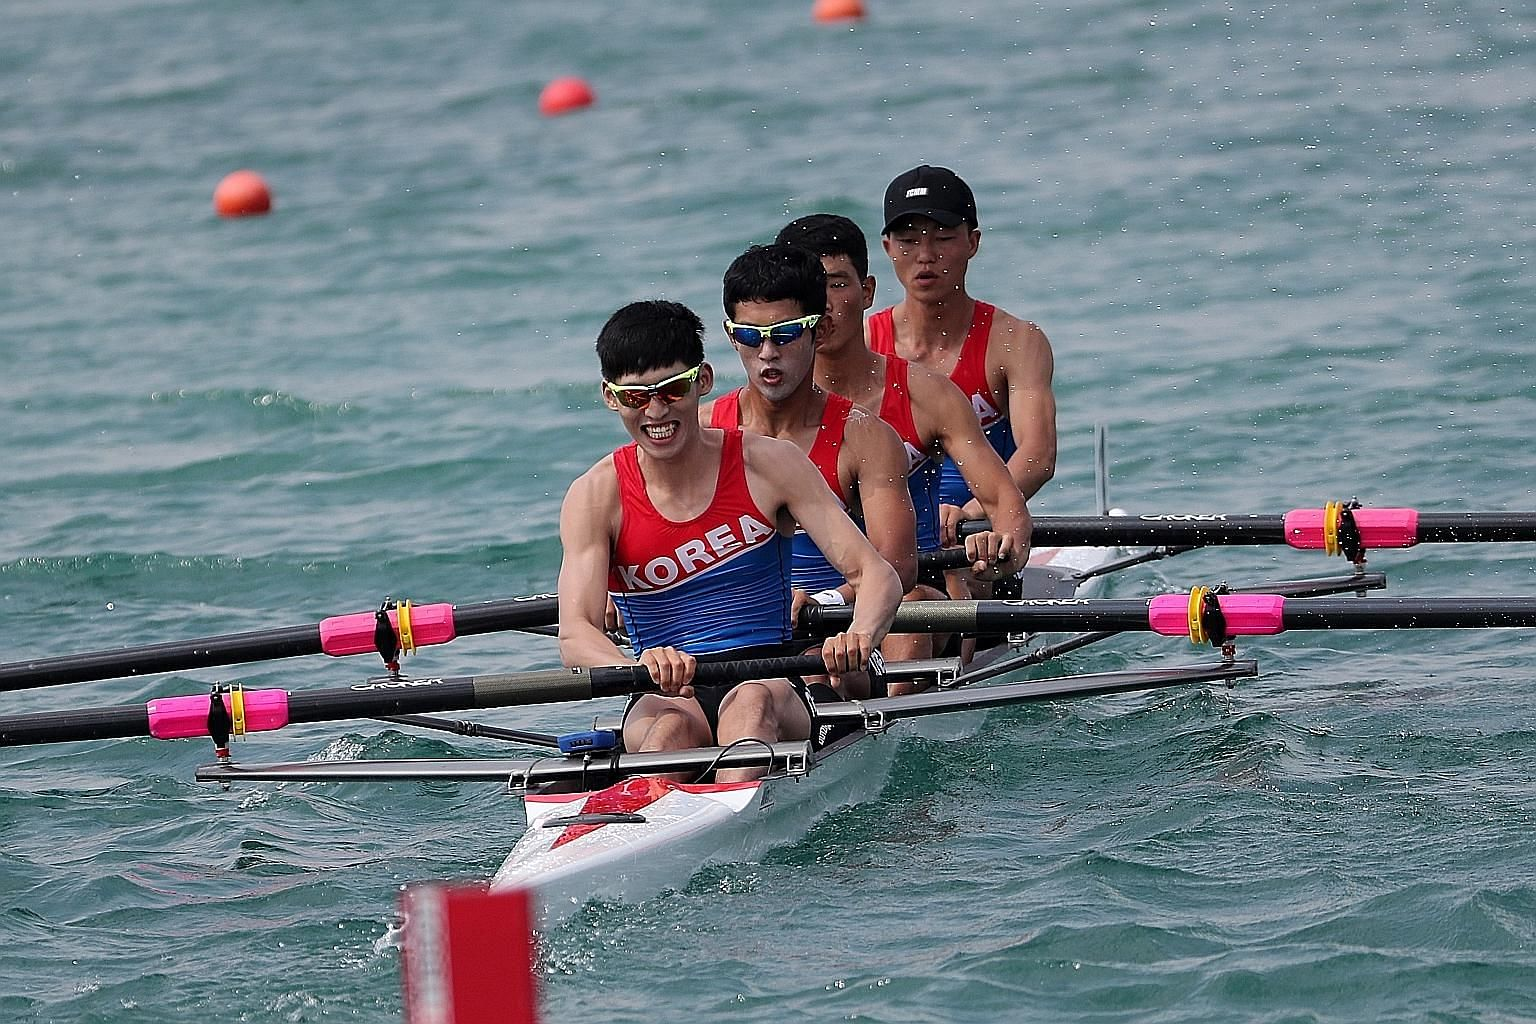 The unified team from North and South Korea competing in the men's lightweight four repechage rowing event in Palembang.